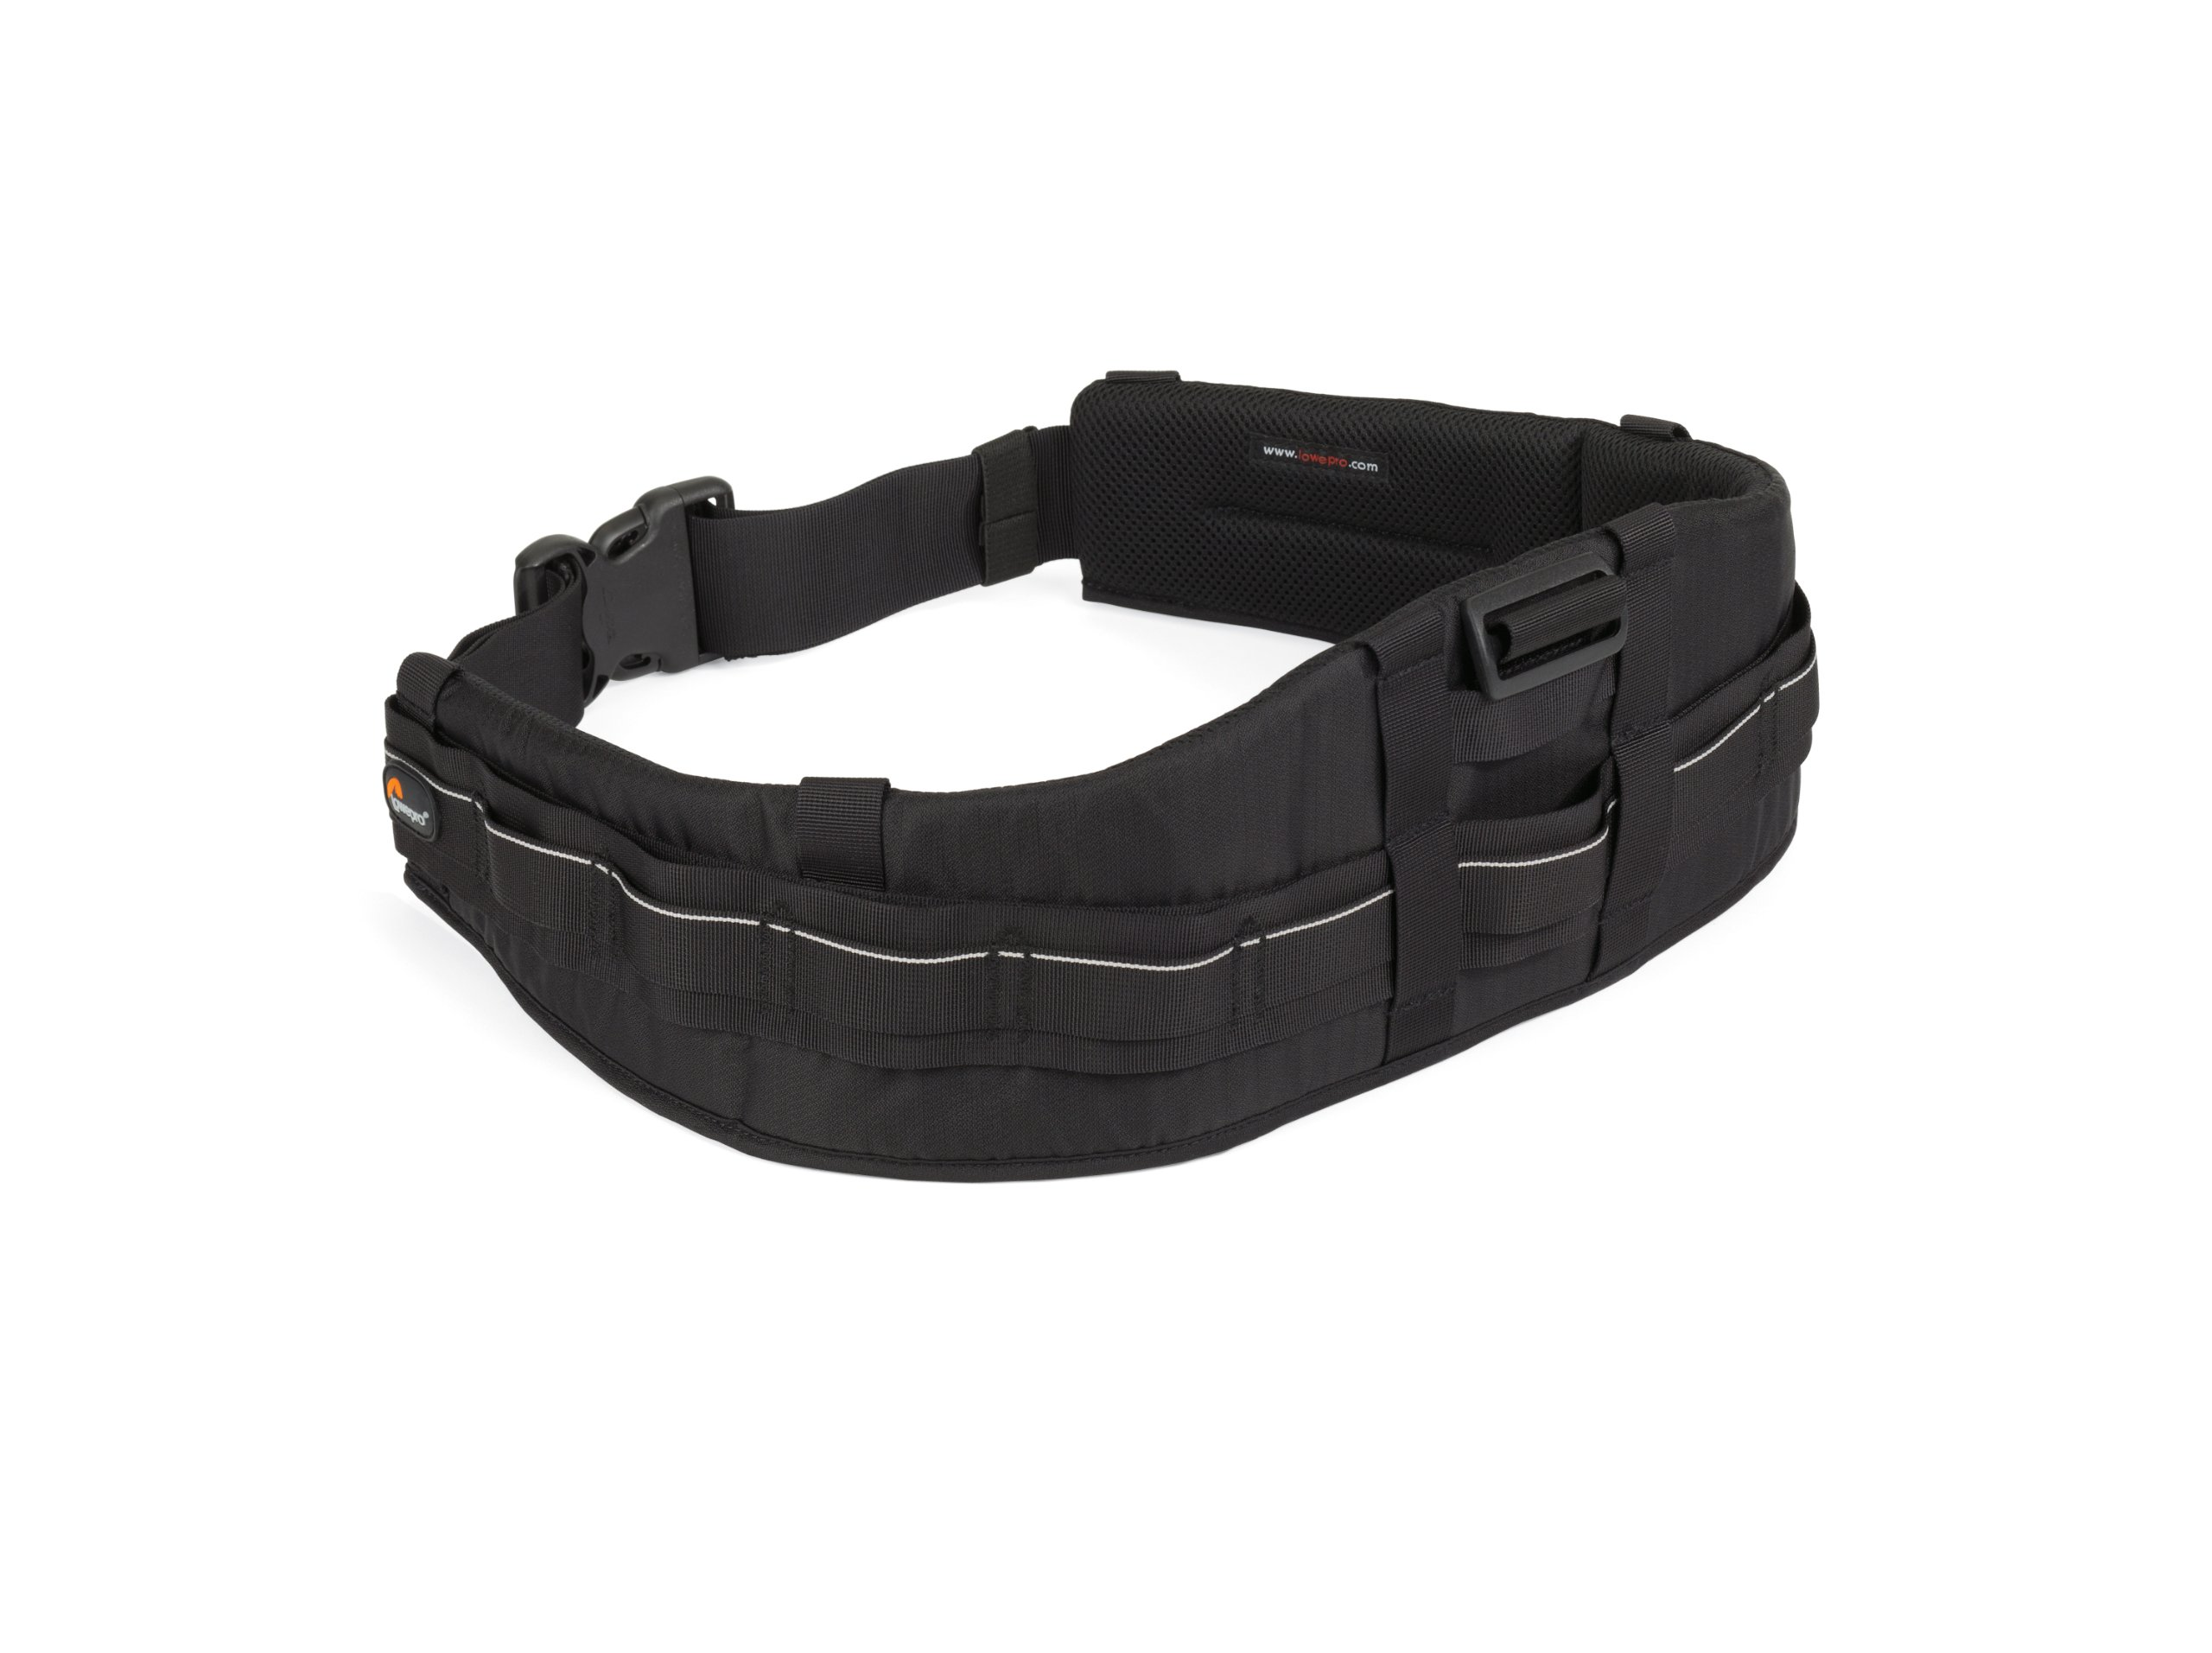 Lowepro S&F Deluxe Technical Belt S/M for Photographers